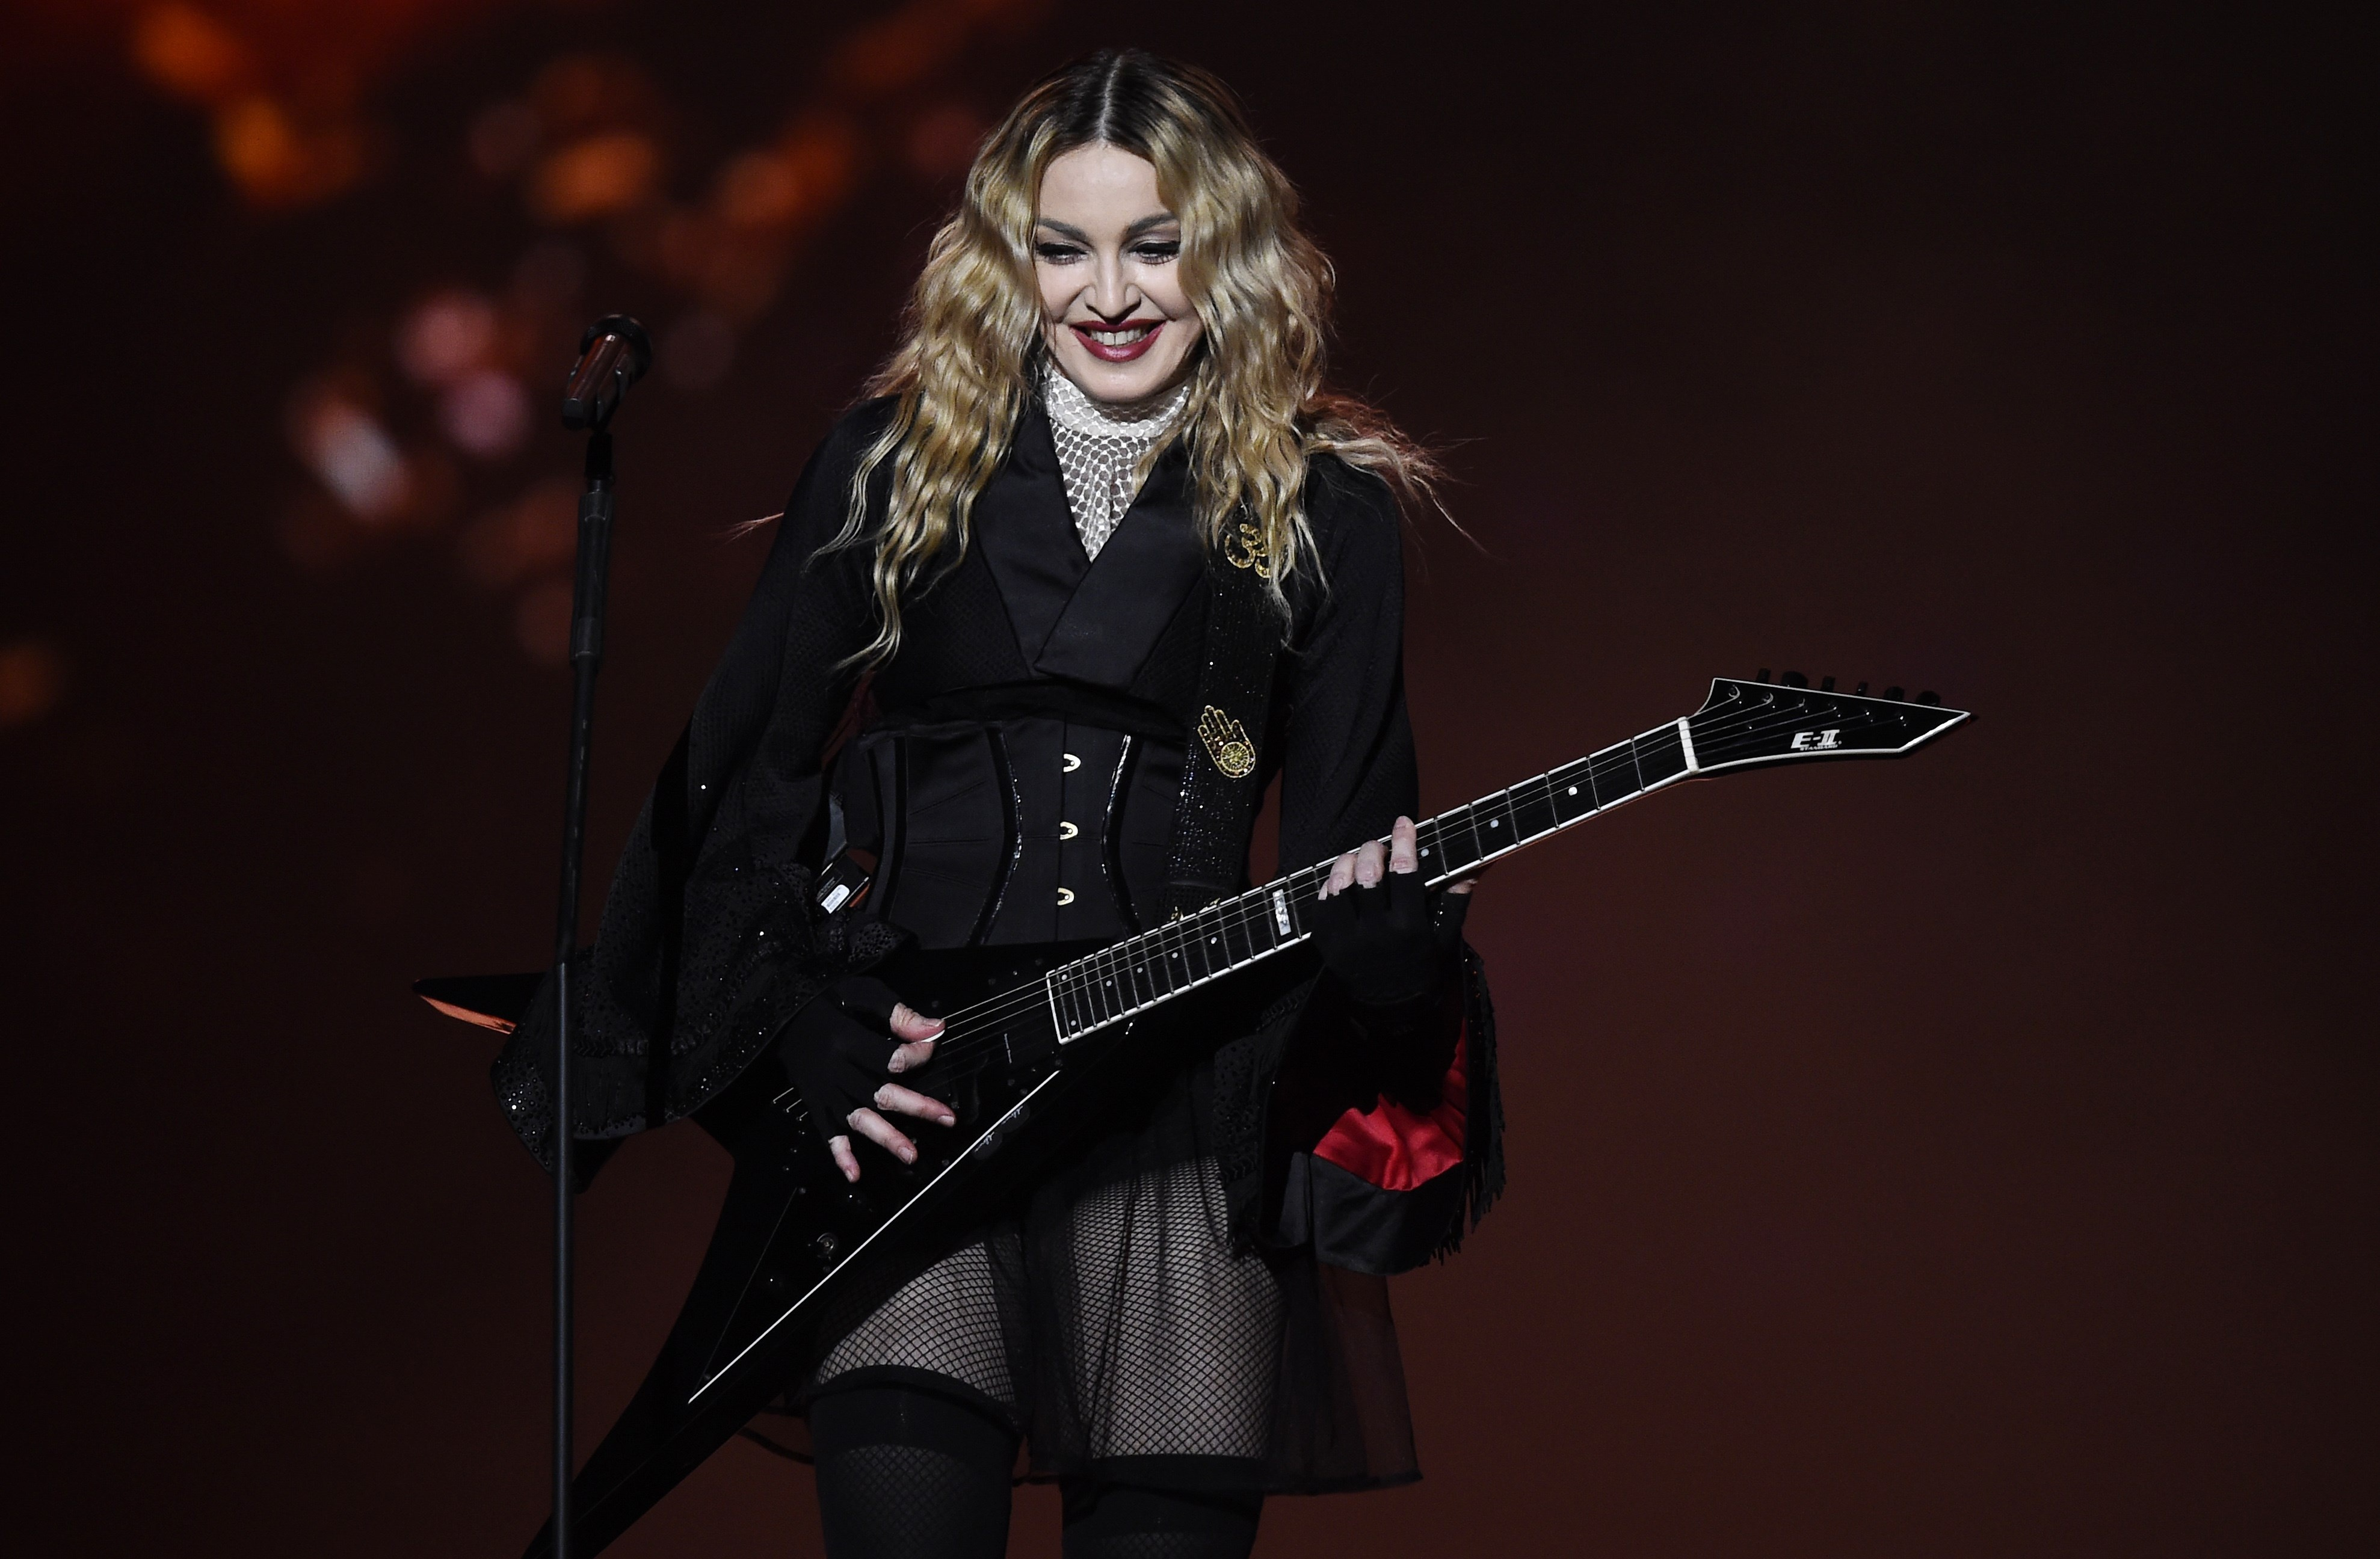 madonna_performs_on_stage_duri